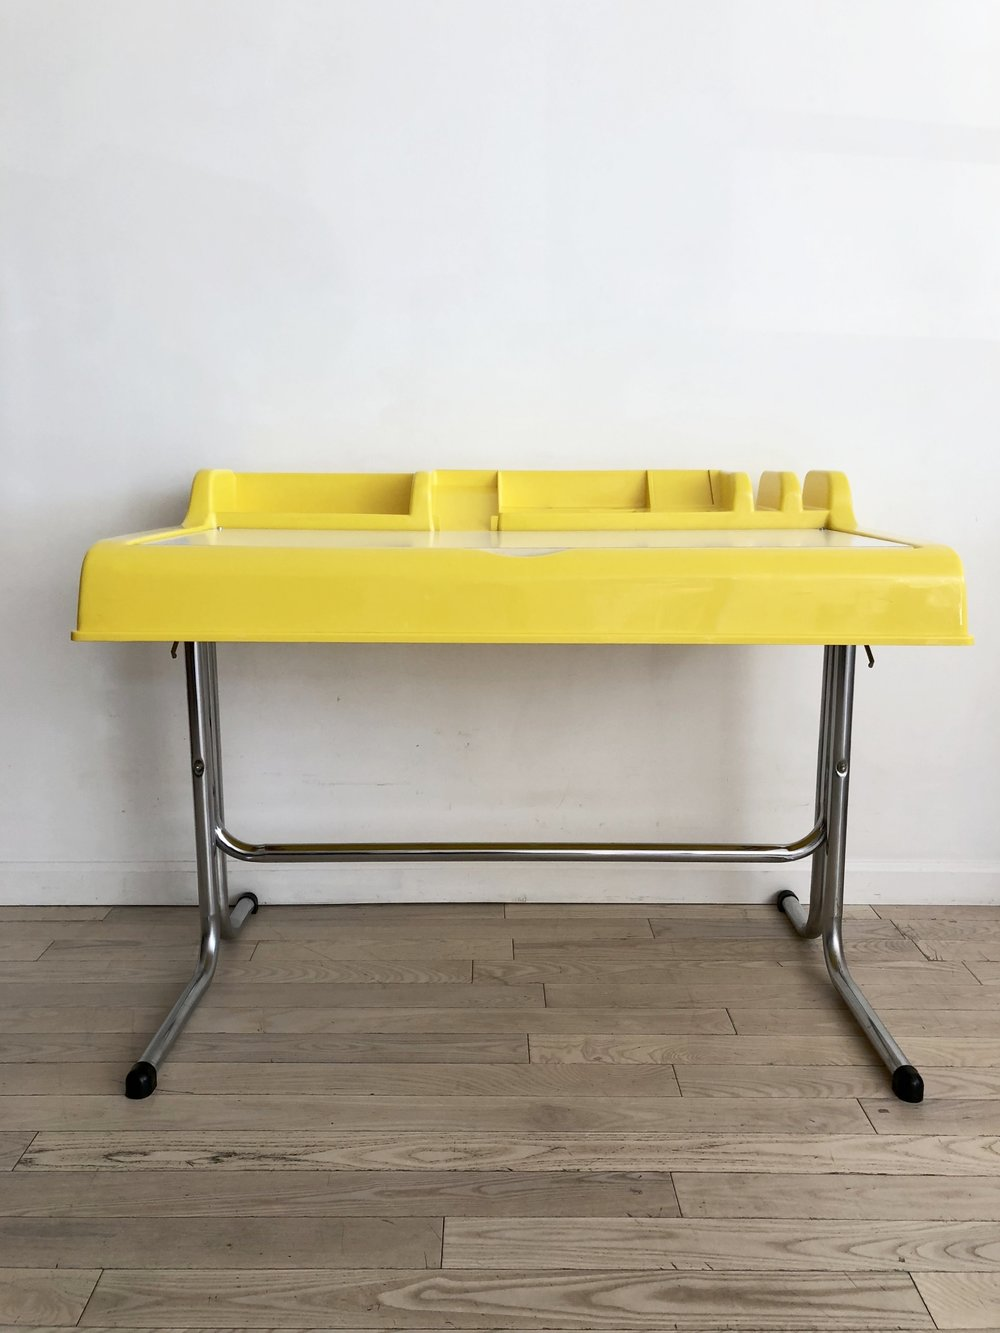 1970s Yellow Plastic Desk